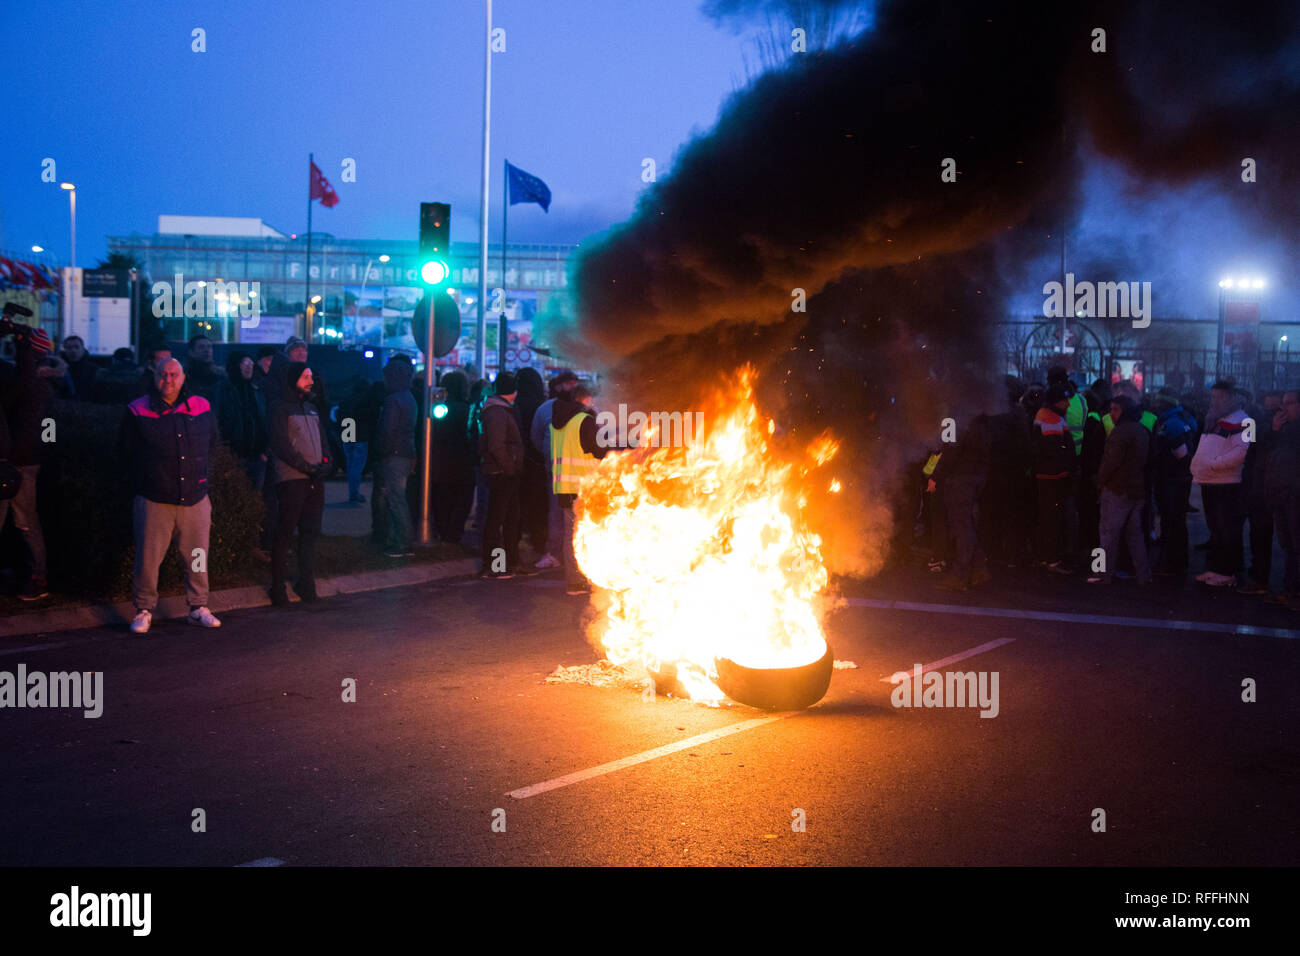 Taxi drivers are seen burning containers and wheels during the